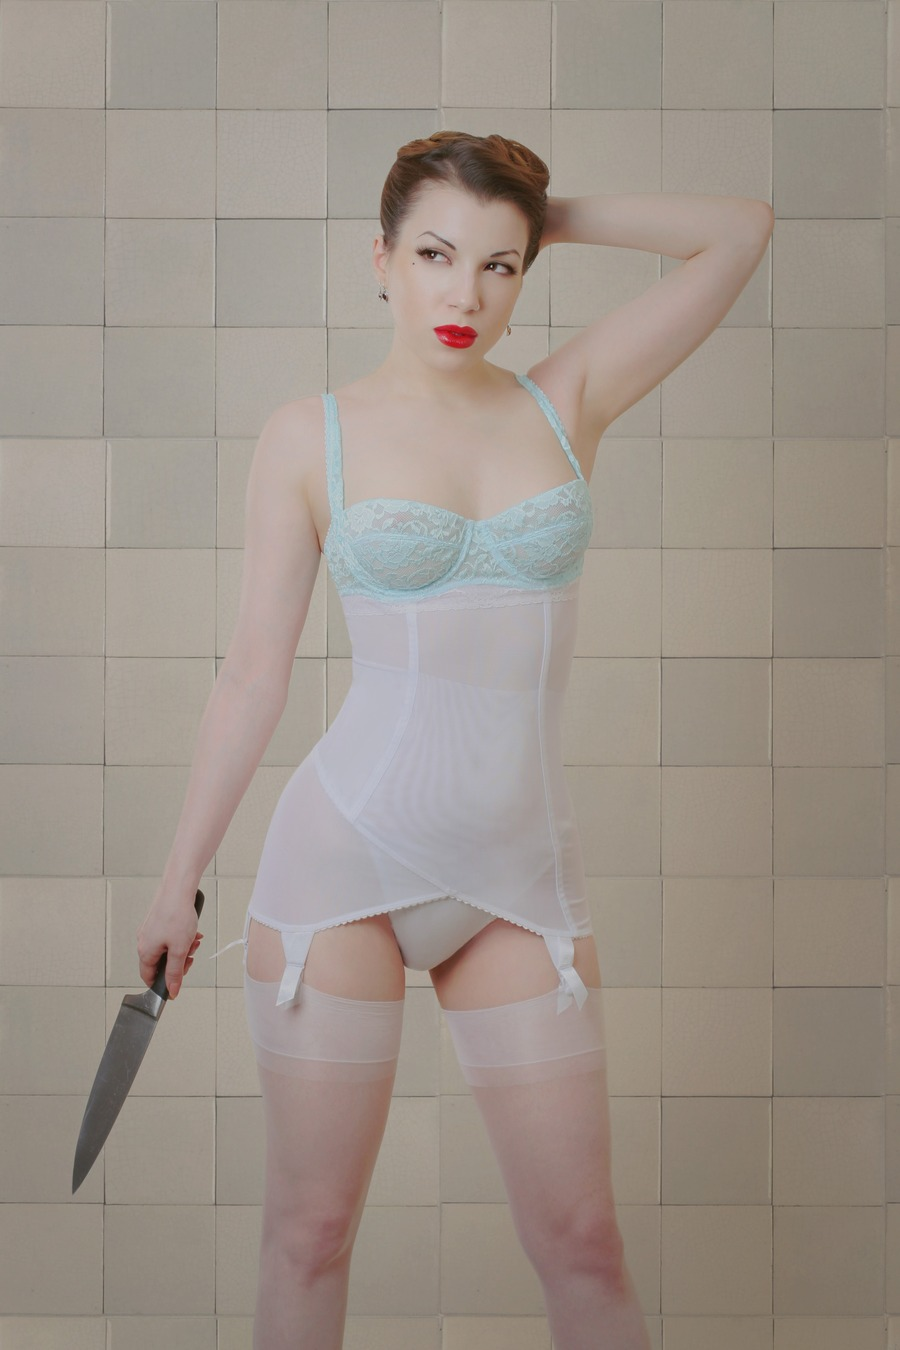 Kiss Me Deadly-69